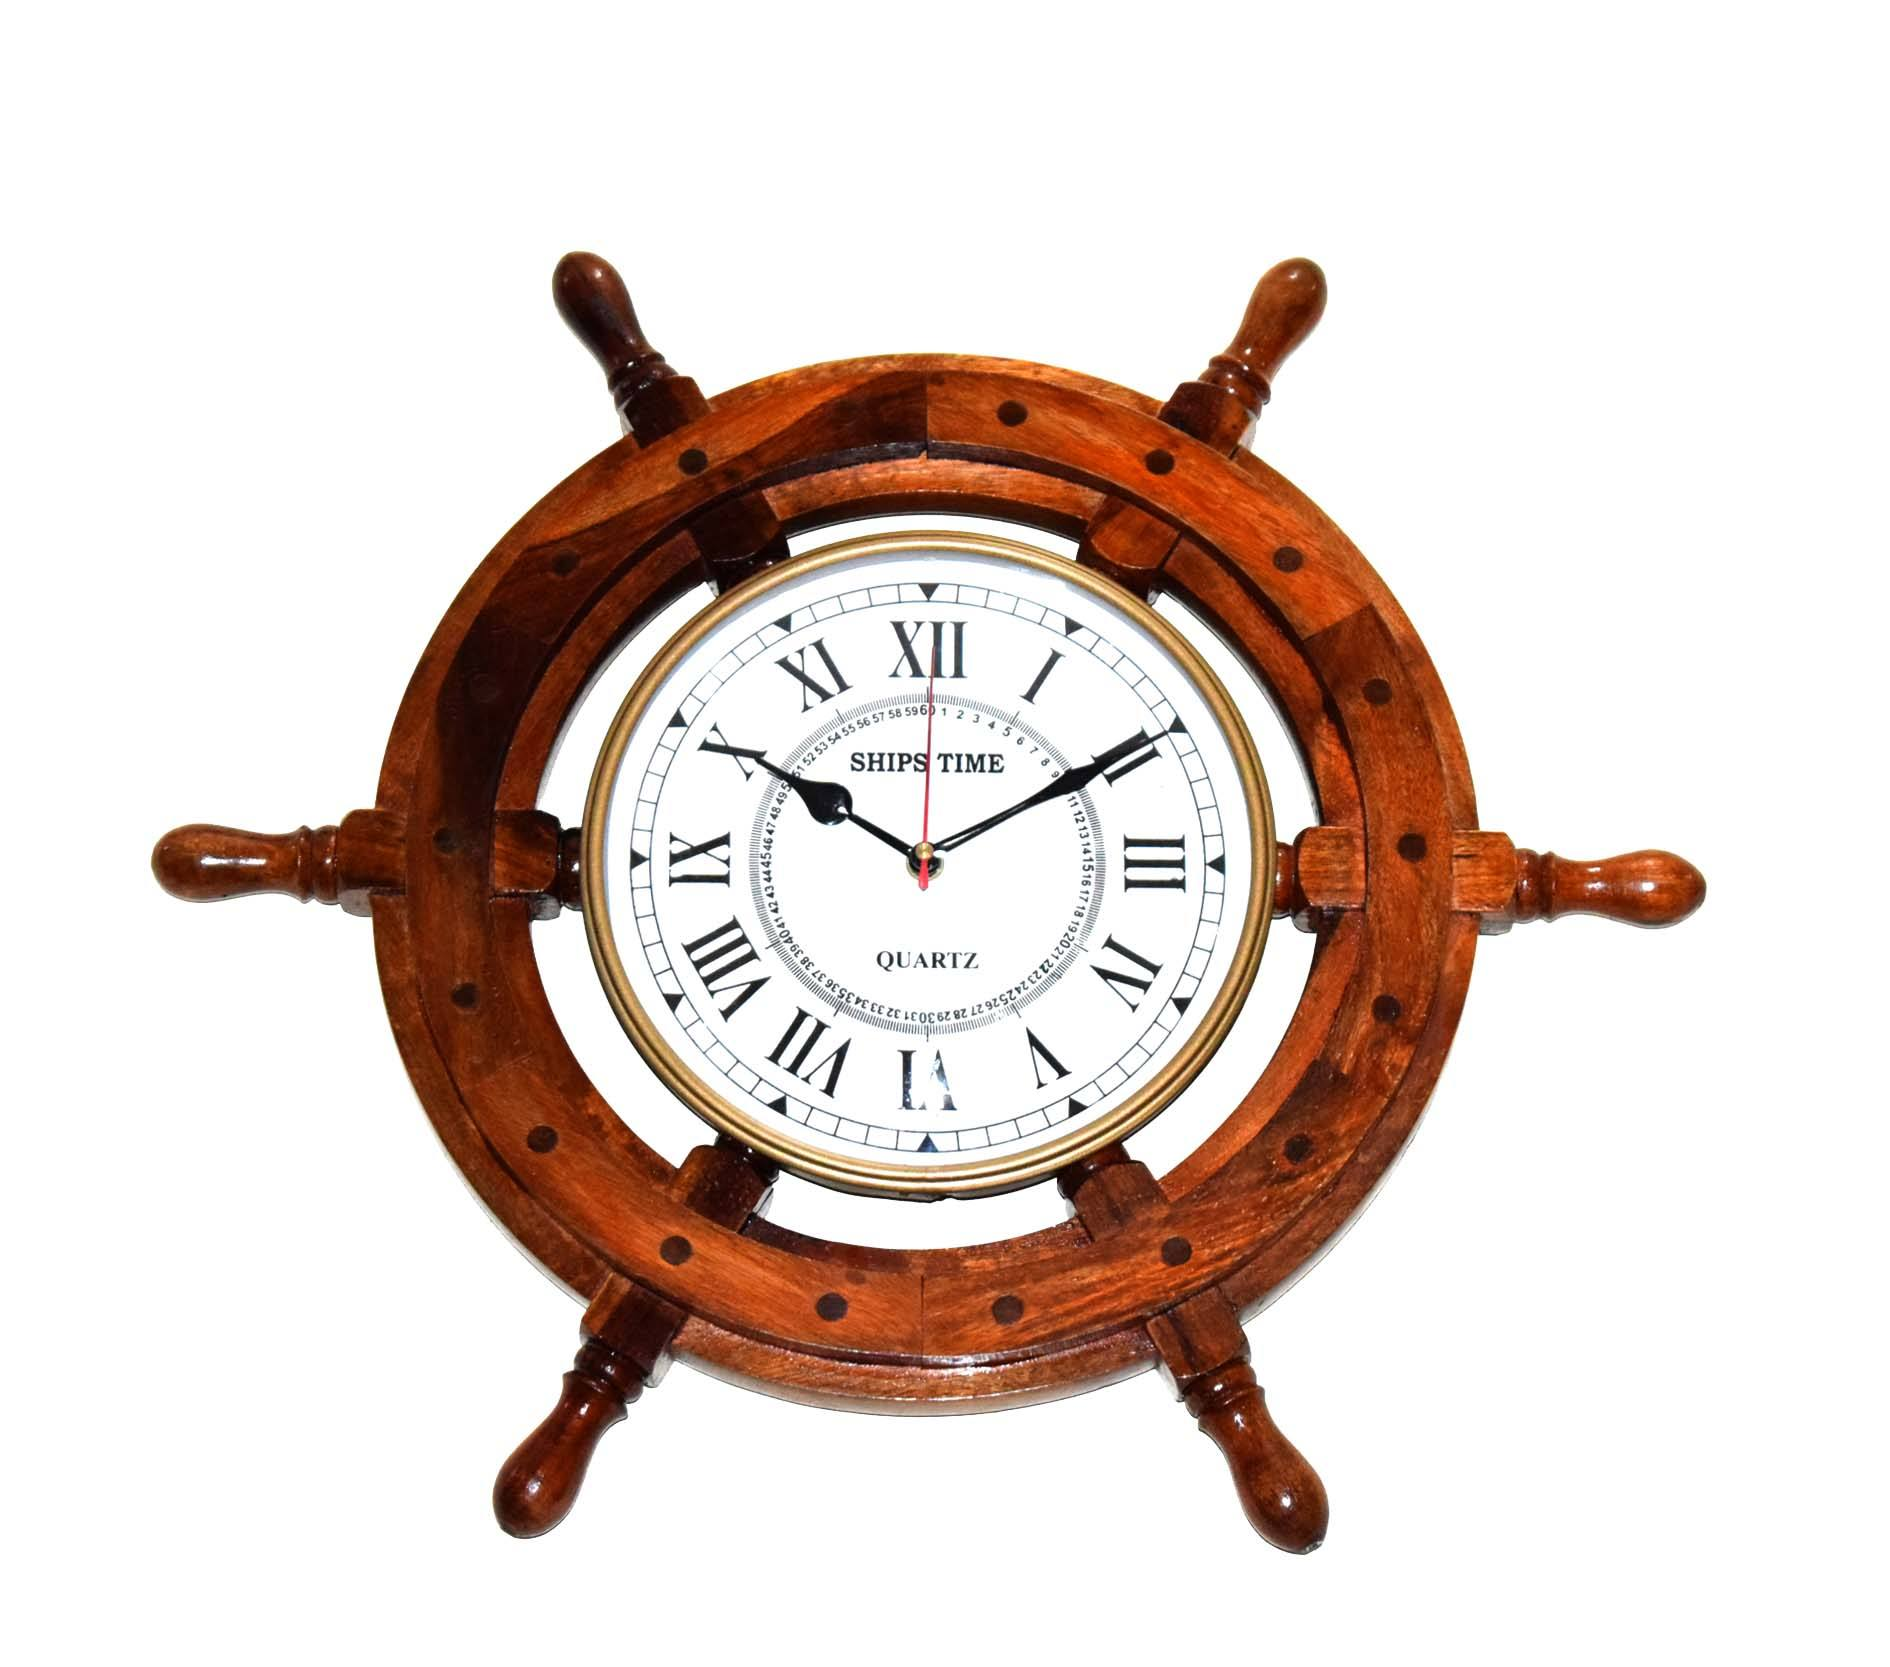 "18"" Wooden Wall Ship Wheel with Ship's Time Captain's Clock Made Of High Quality Mango Wood Completely Finished product"